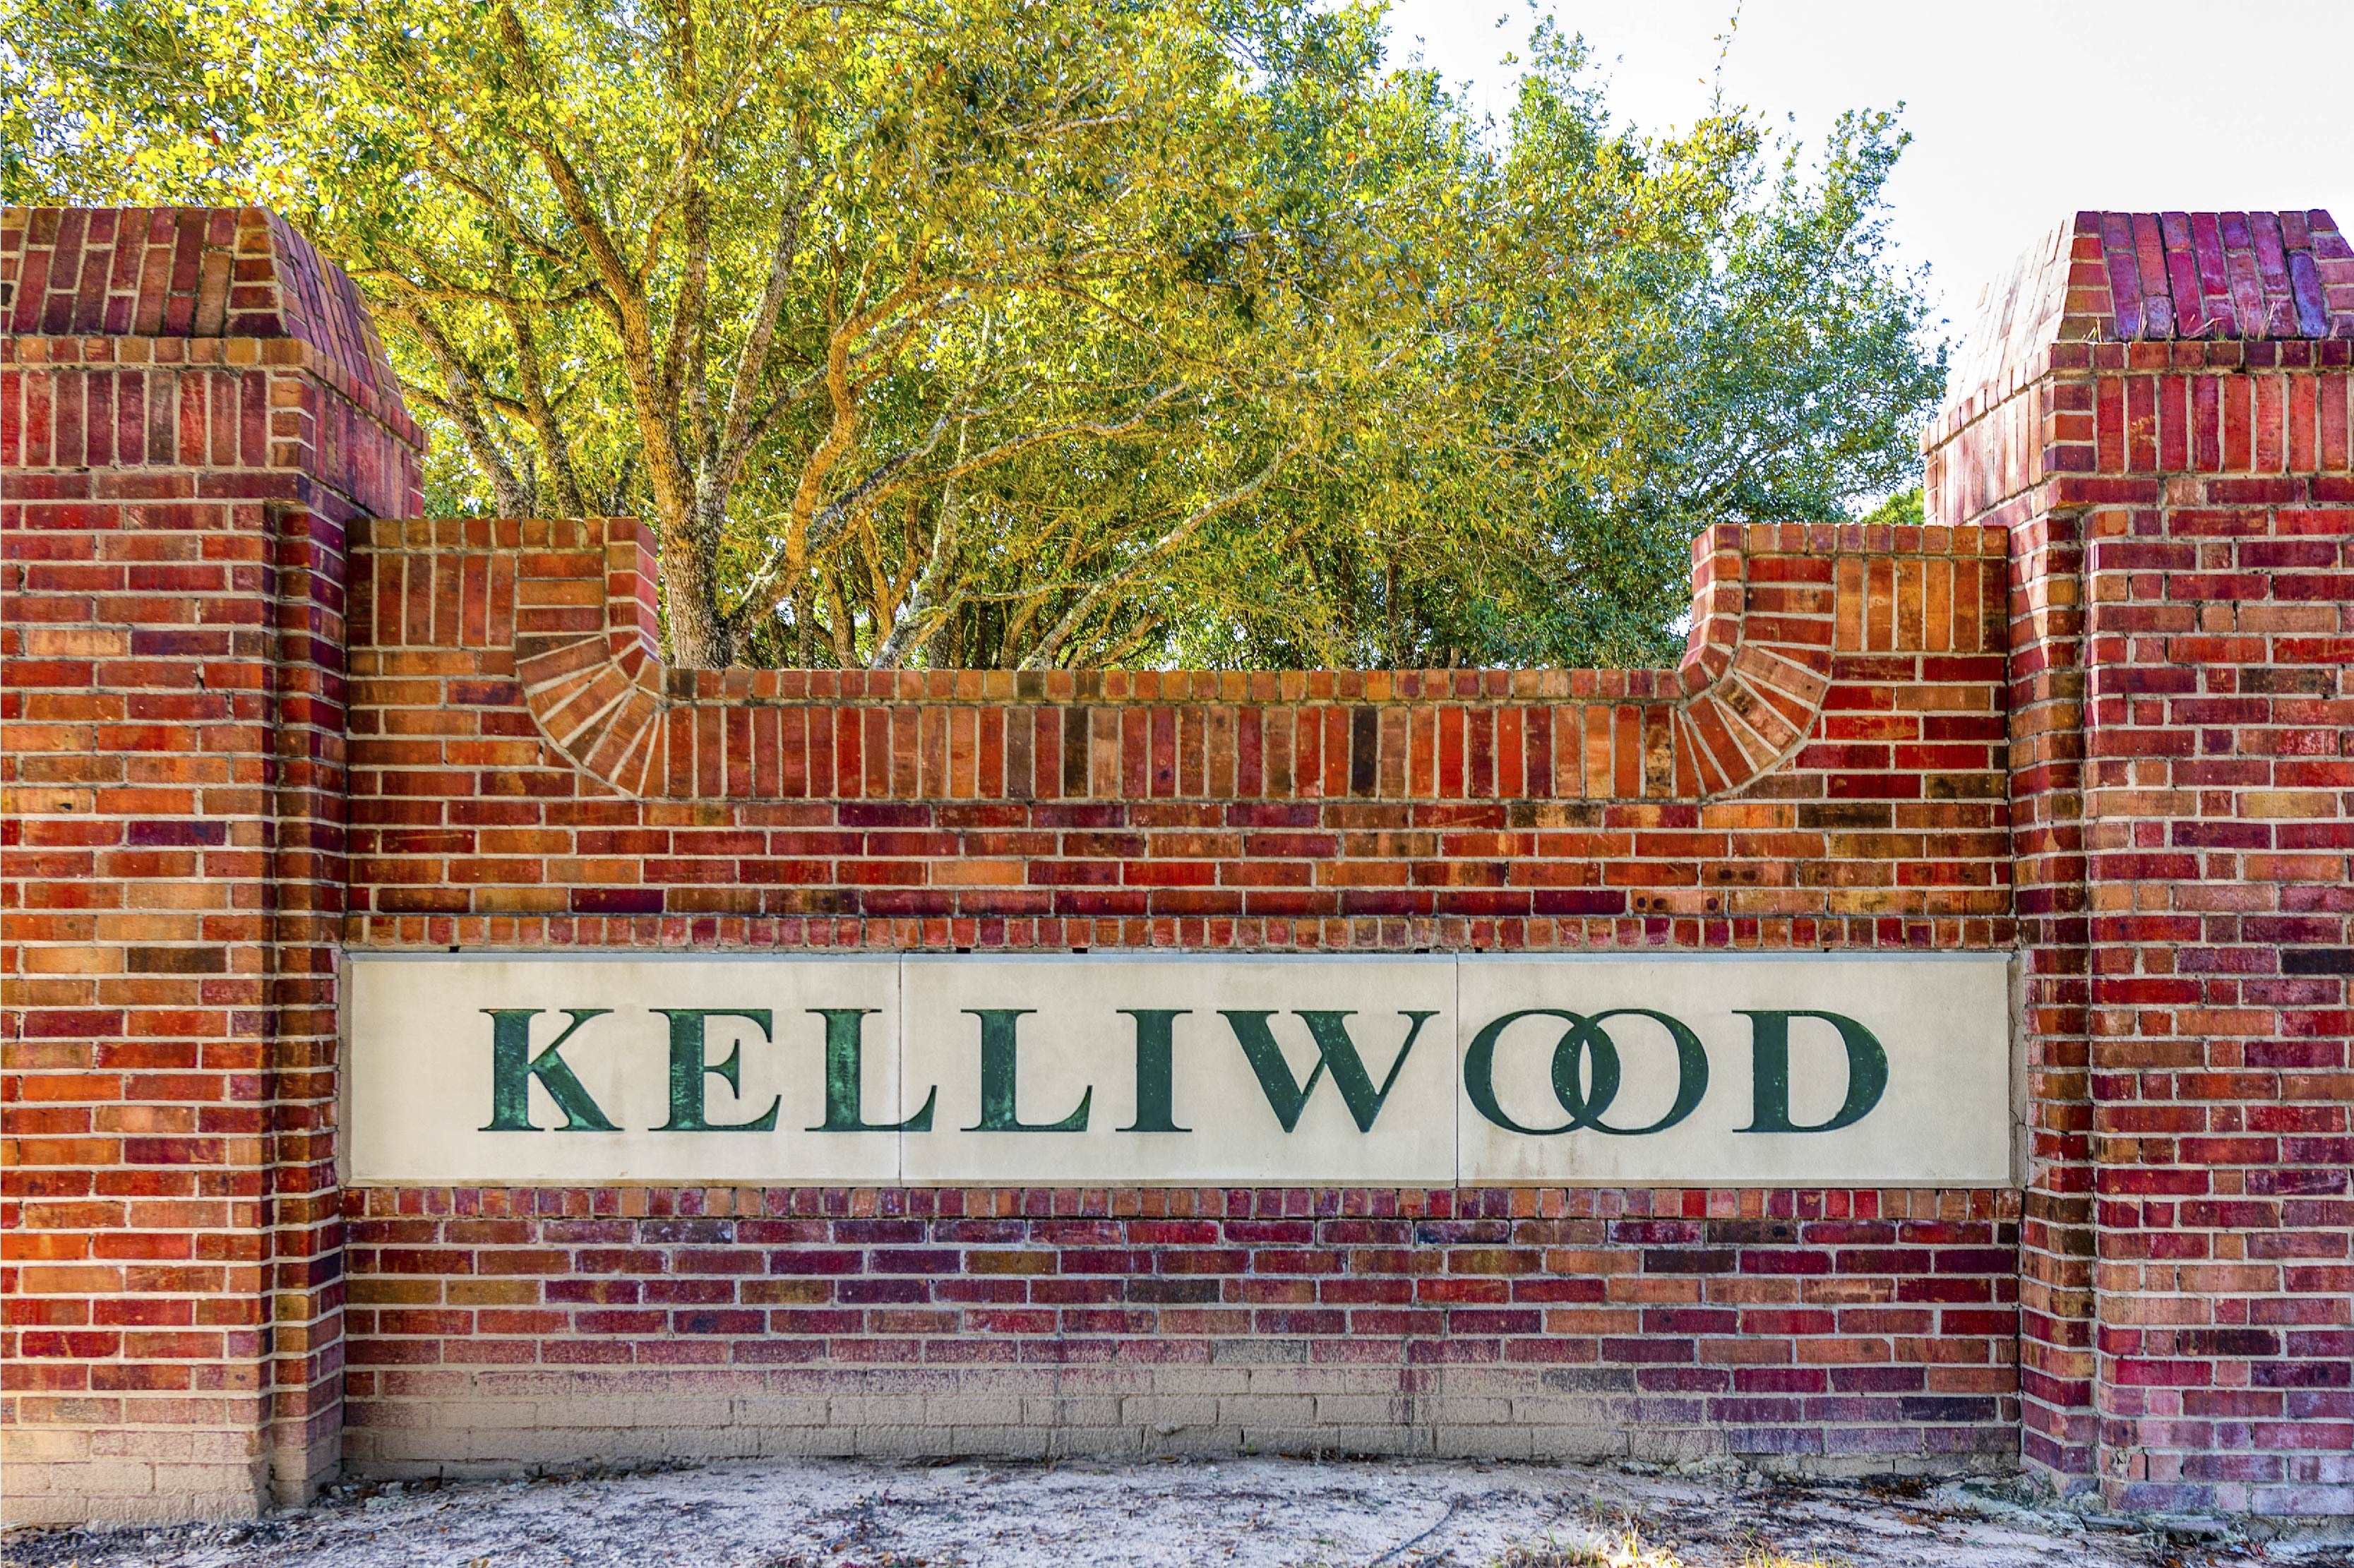 Kelliwood Entrance